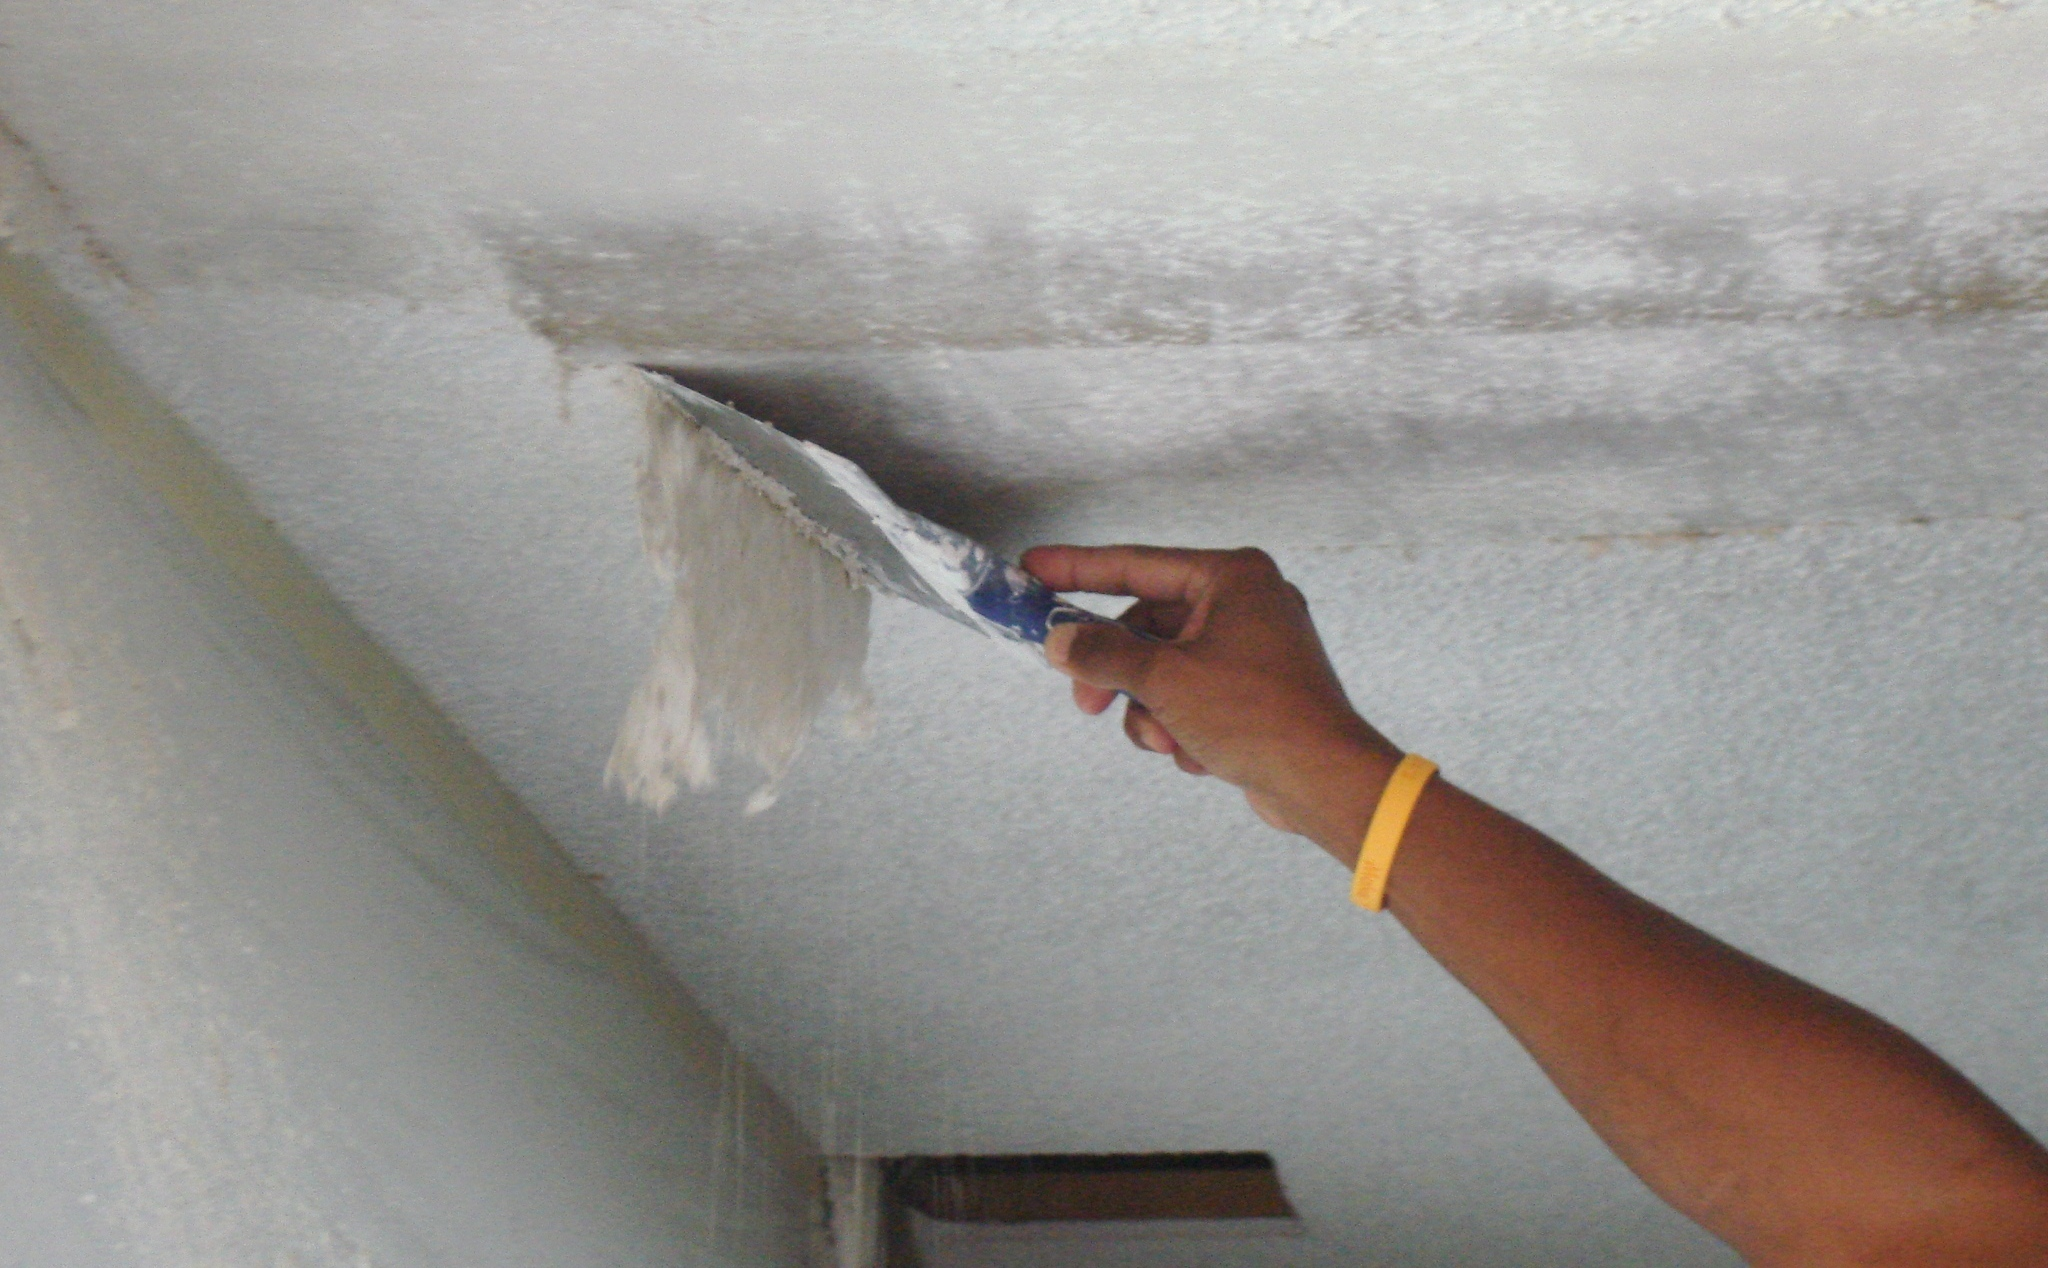 How to remove a popcorn ceiling and change into a smooth ceiling